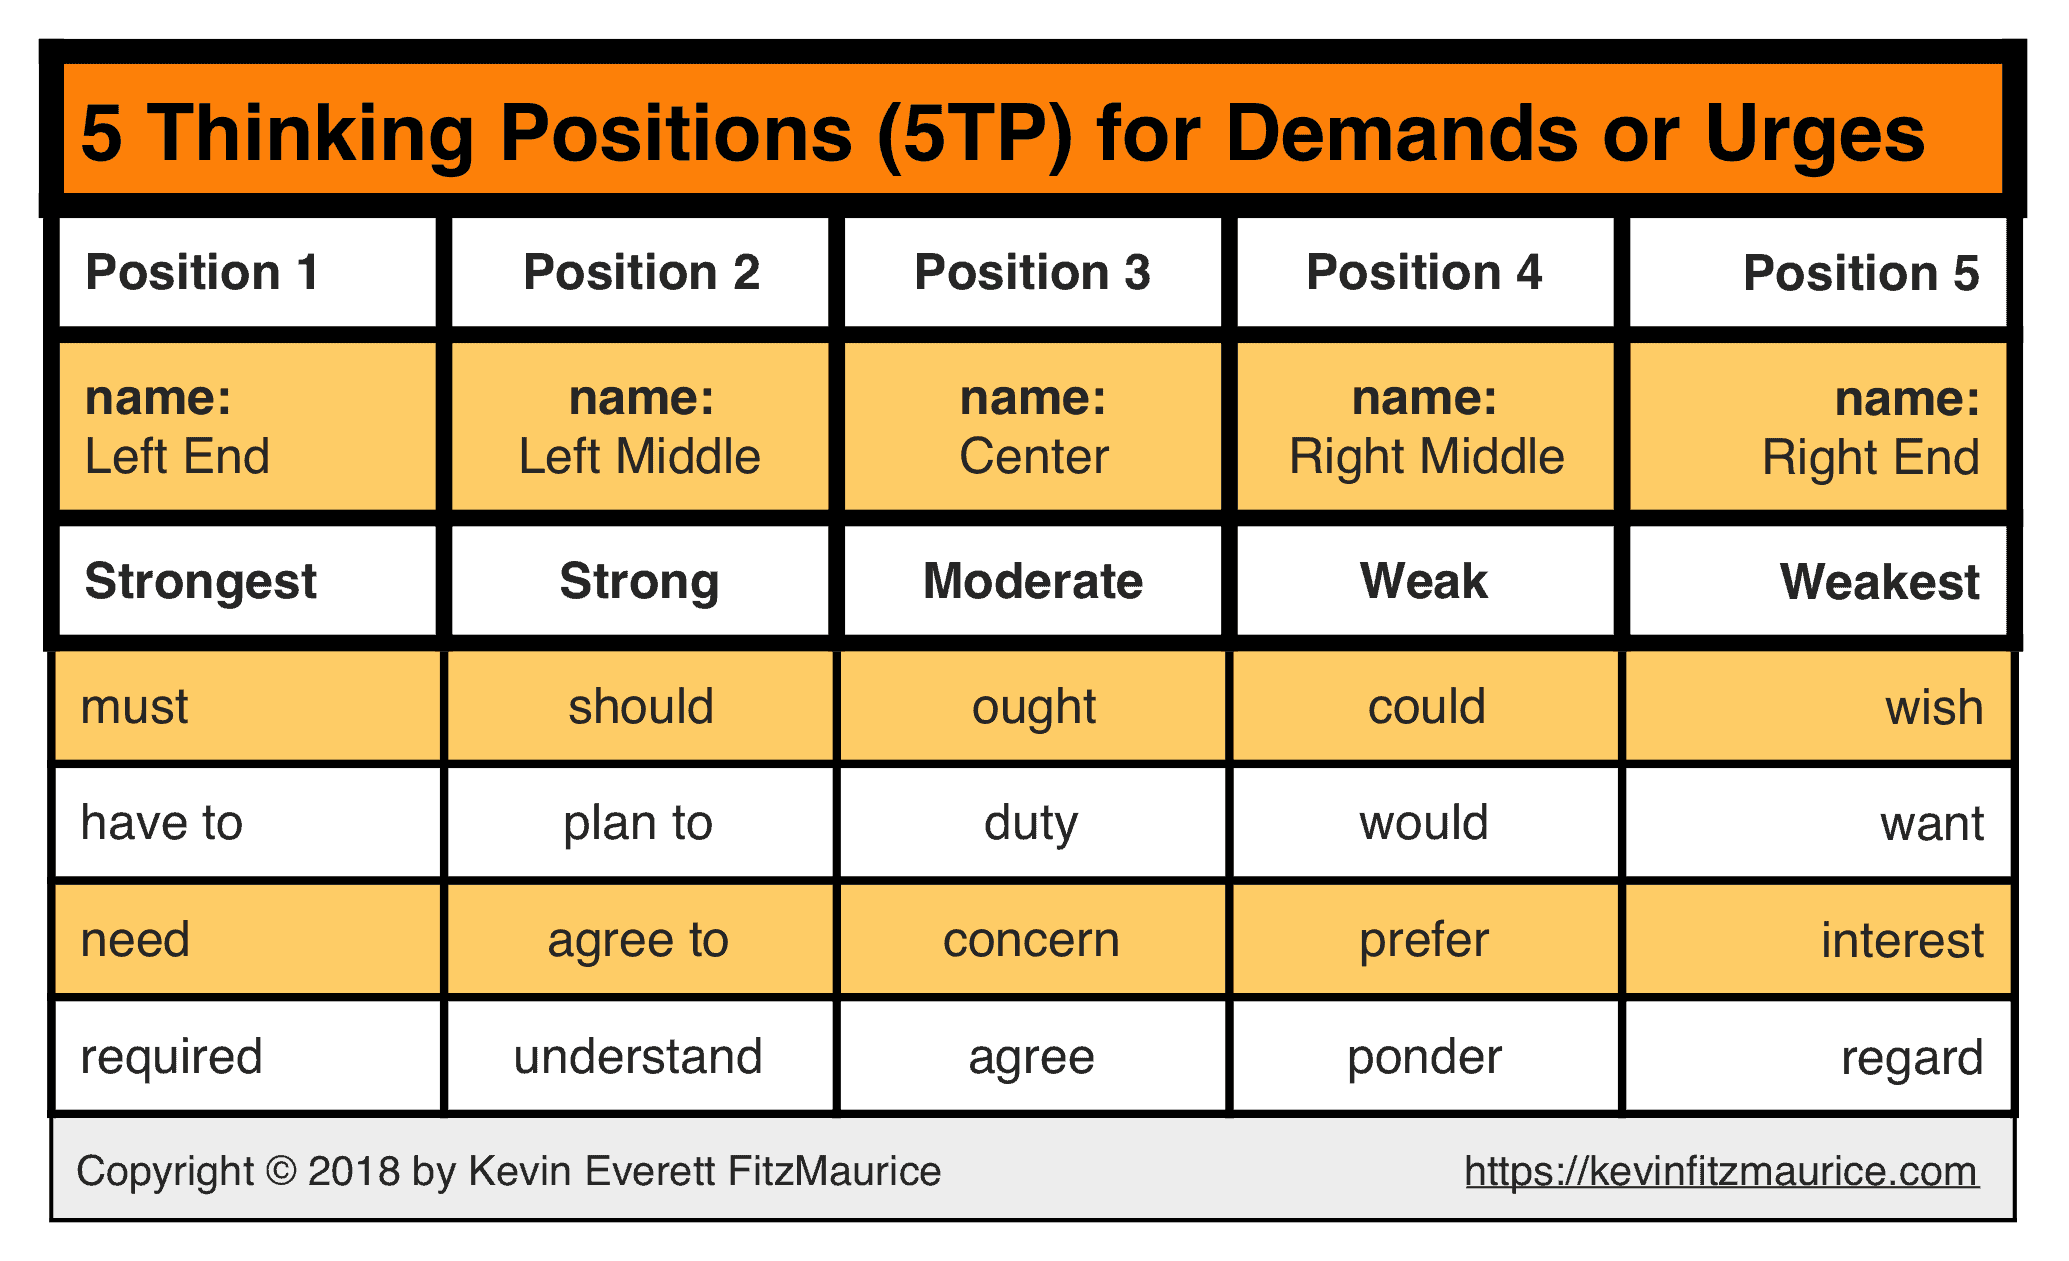 5TP Table on Demands